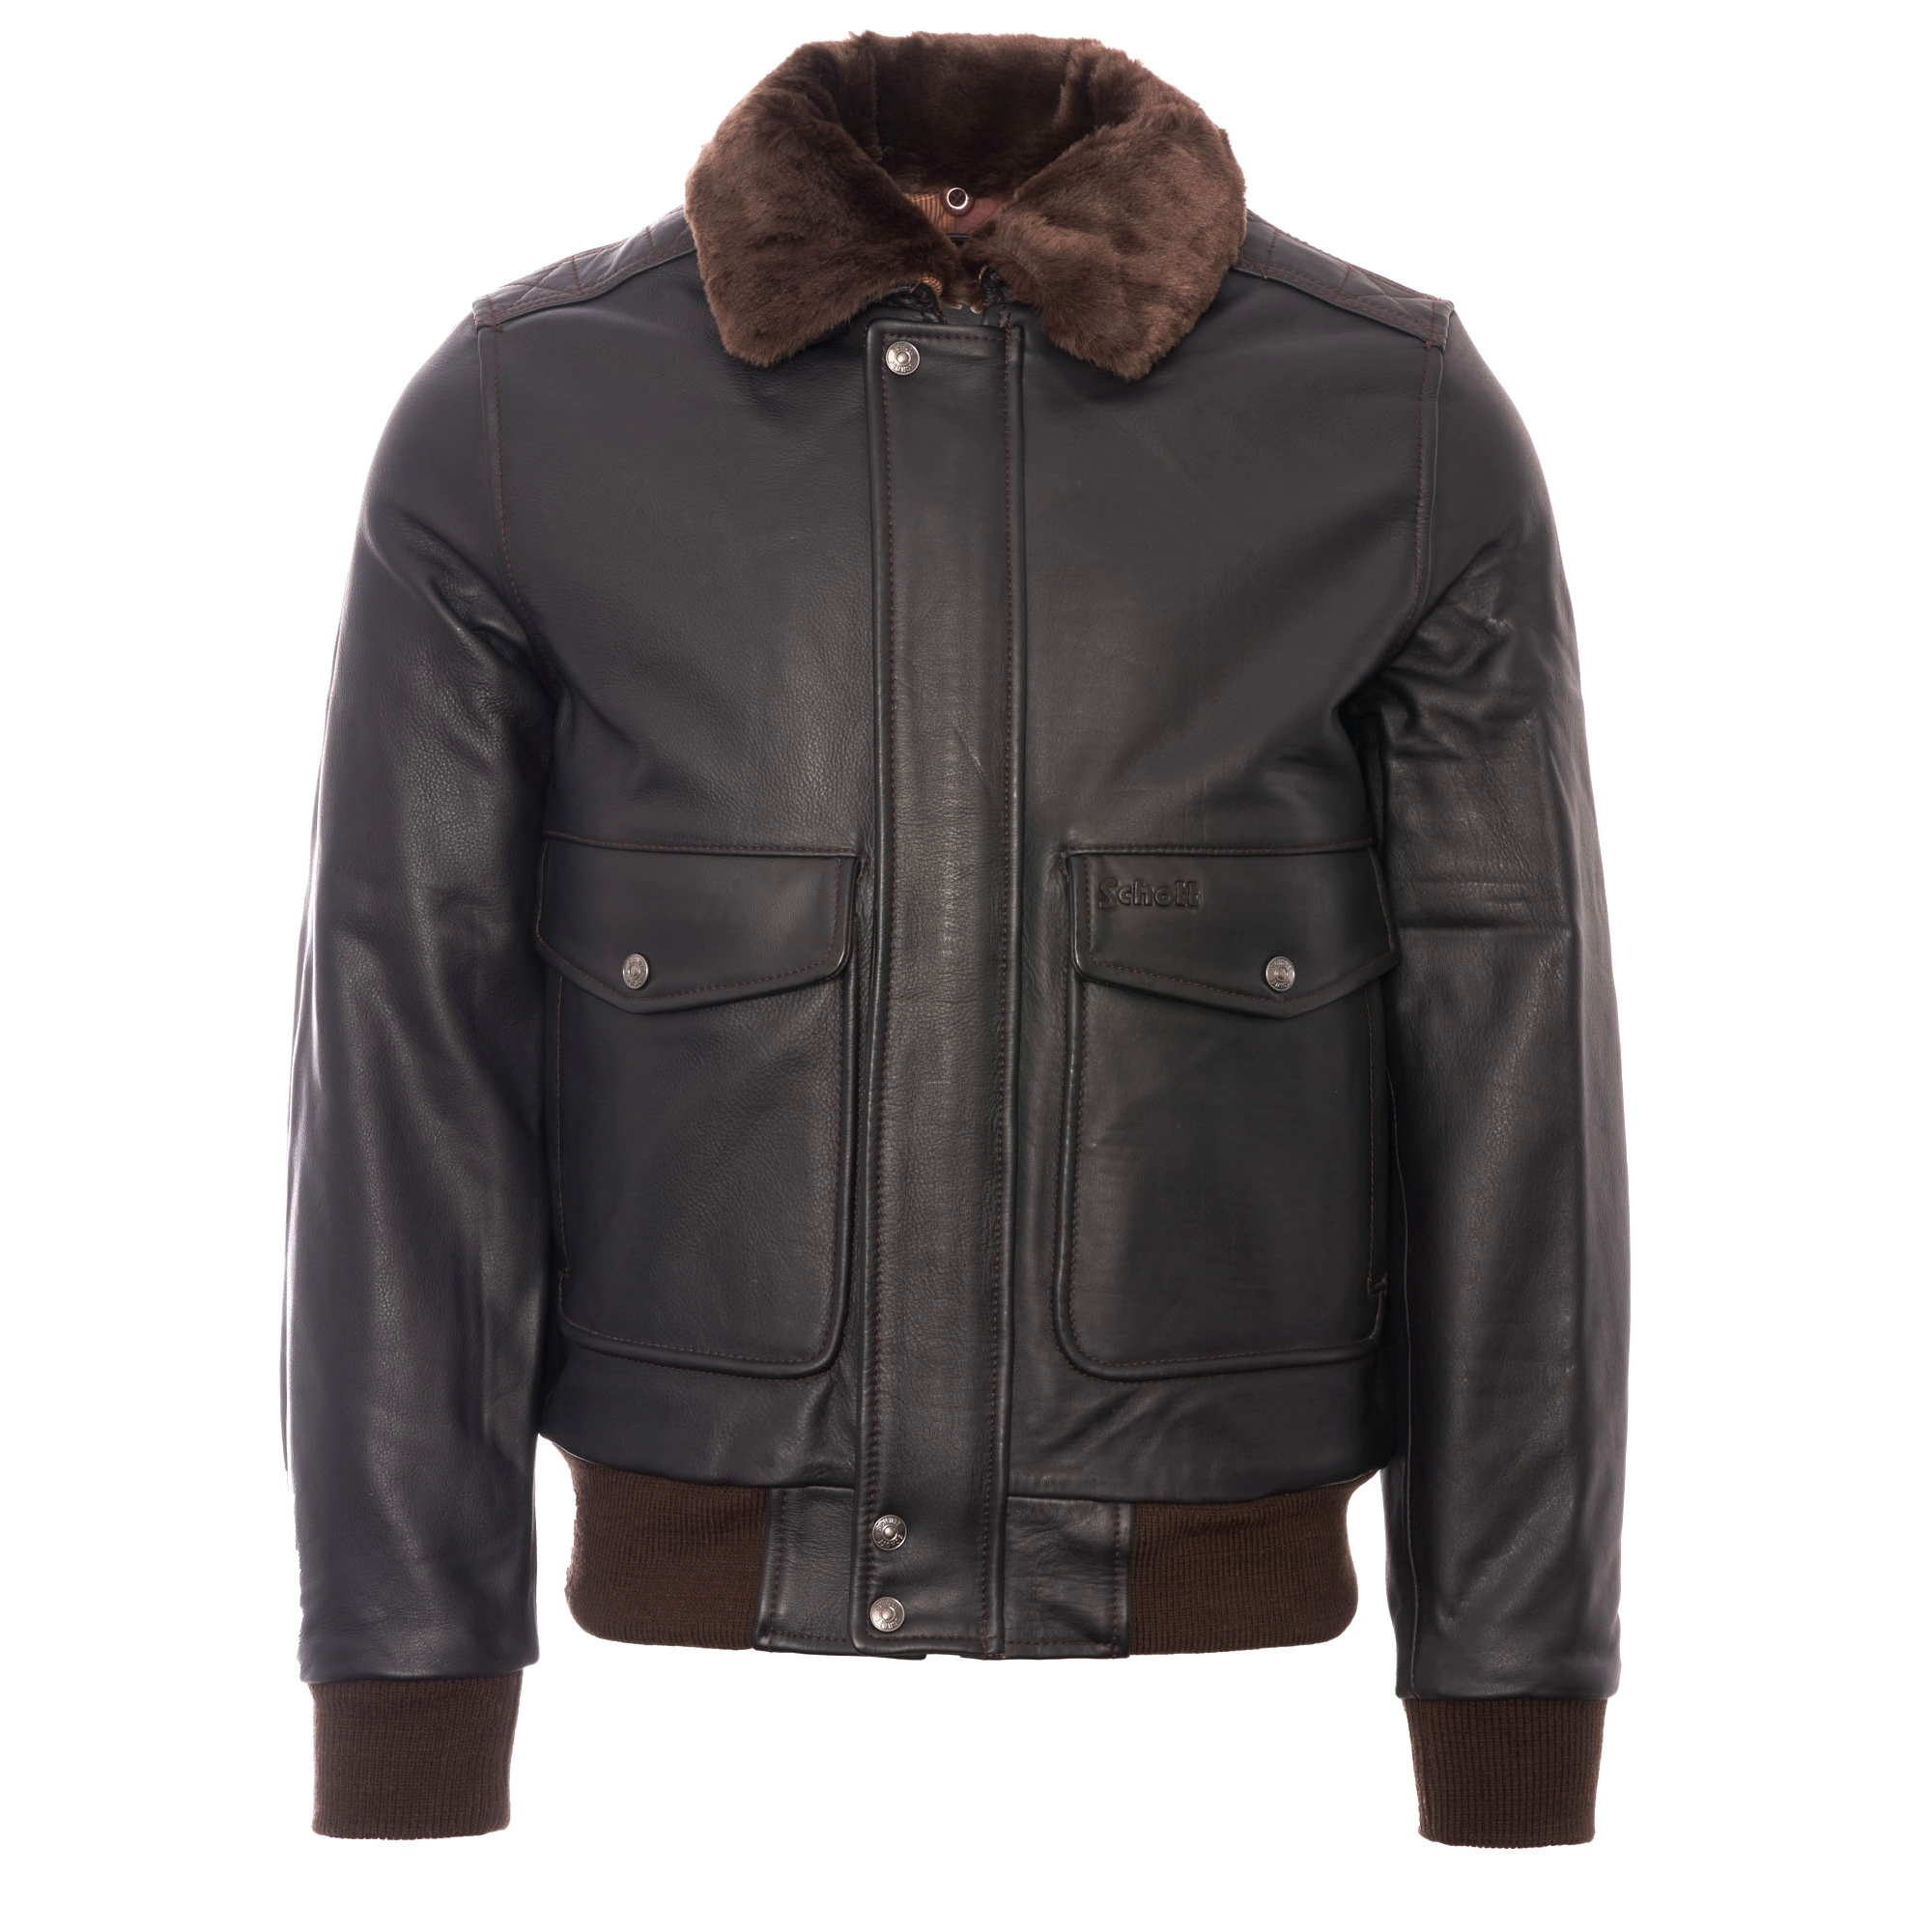 75723e19de0 LC5331X Leather Pilot Jacket - Antic Brown